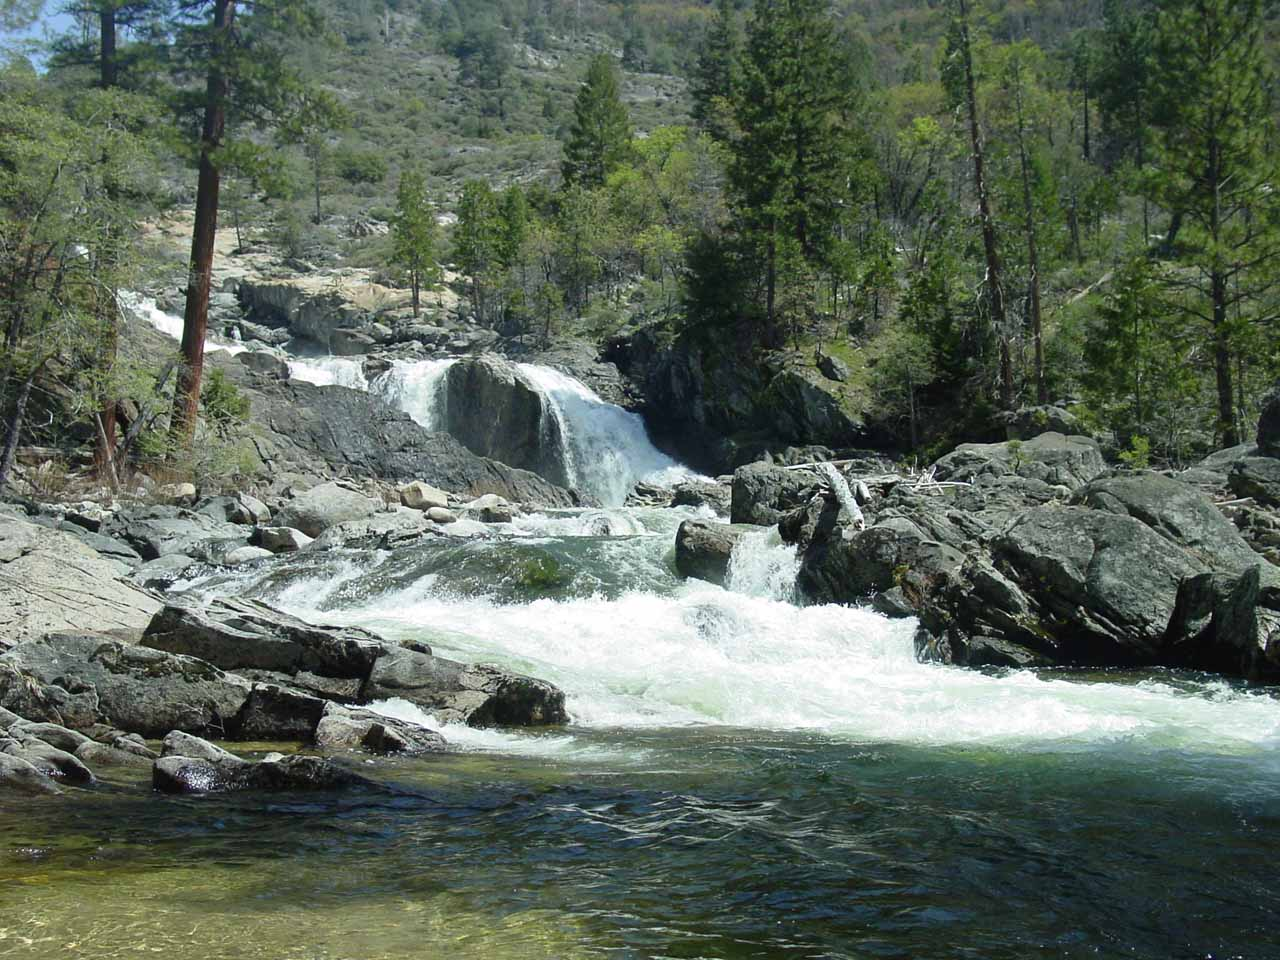 We went a little further downstream from the second cascade of Rancheria Falls where it looked like some spots might be calm enough for a cold dip